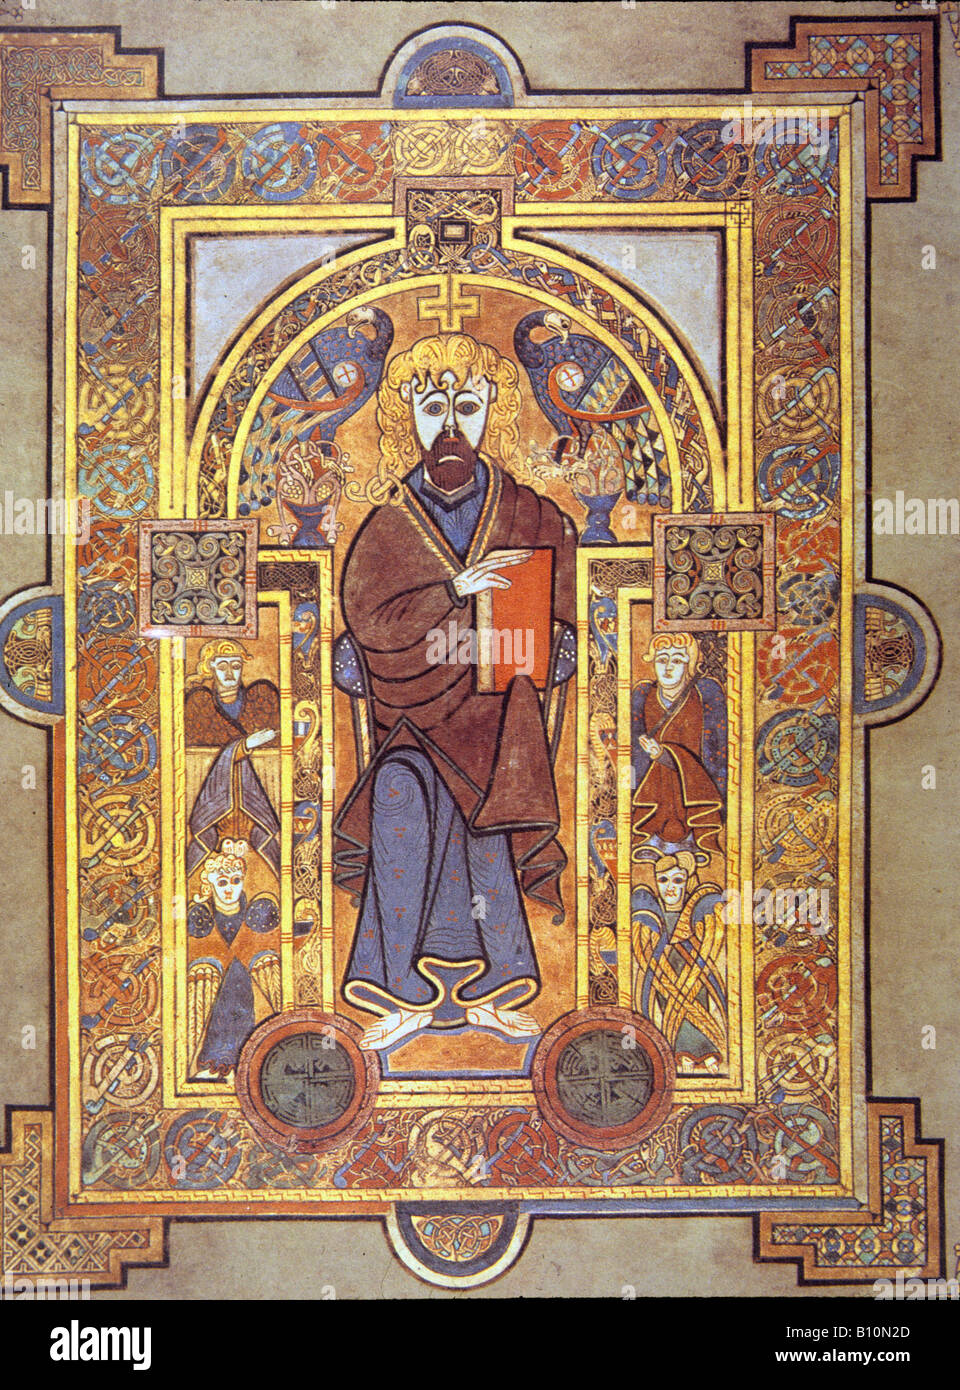 The book of kells pictures